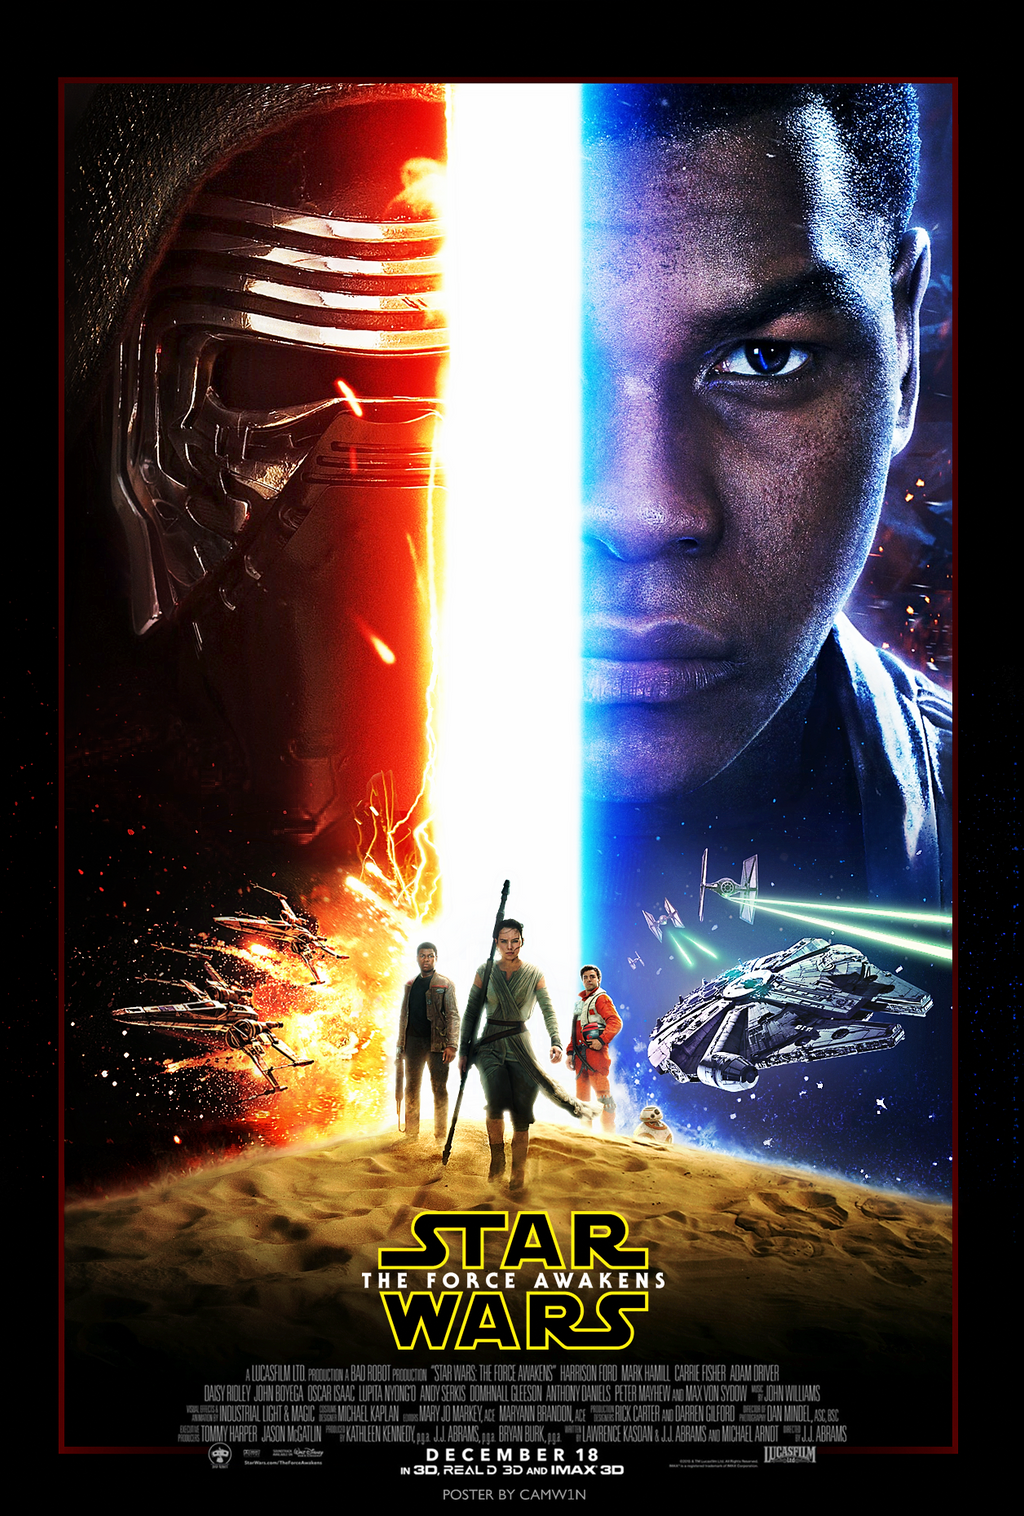 Star Wars: The Force Awakens (2015) - Poster by CAMW1N